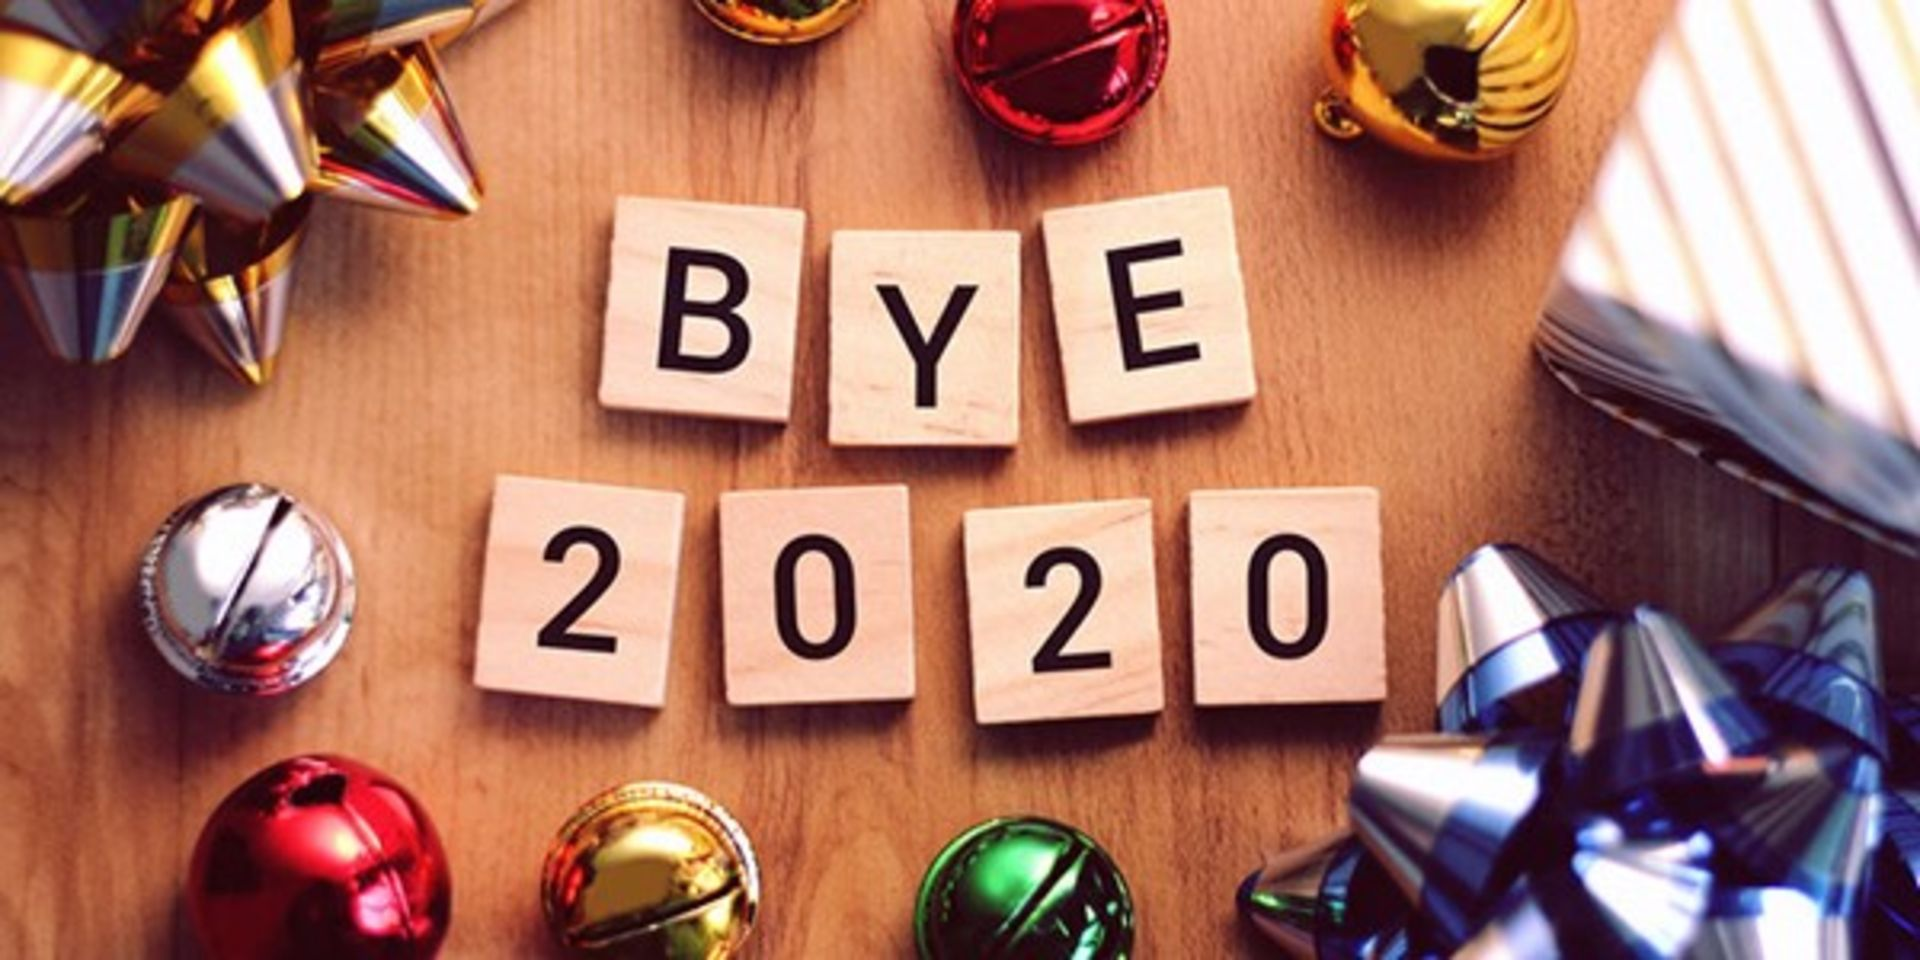 Get lost 2020: Some things to leave behind, with caveats